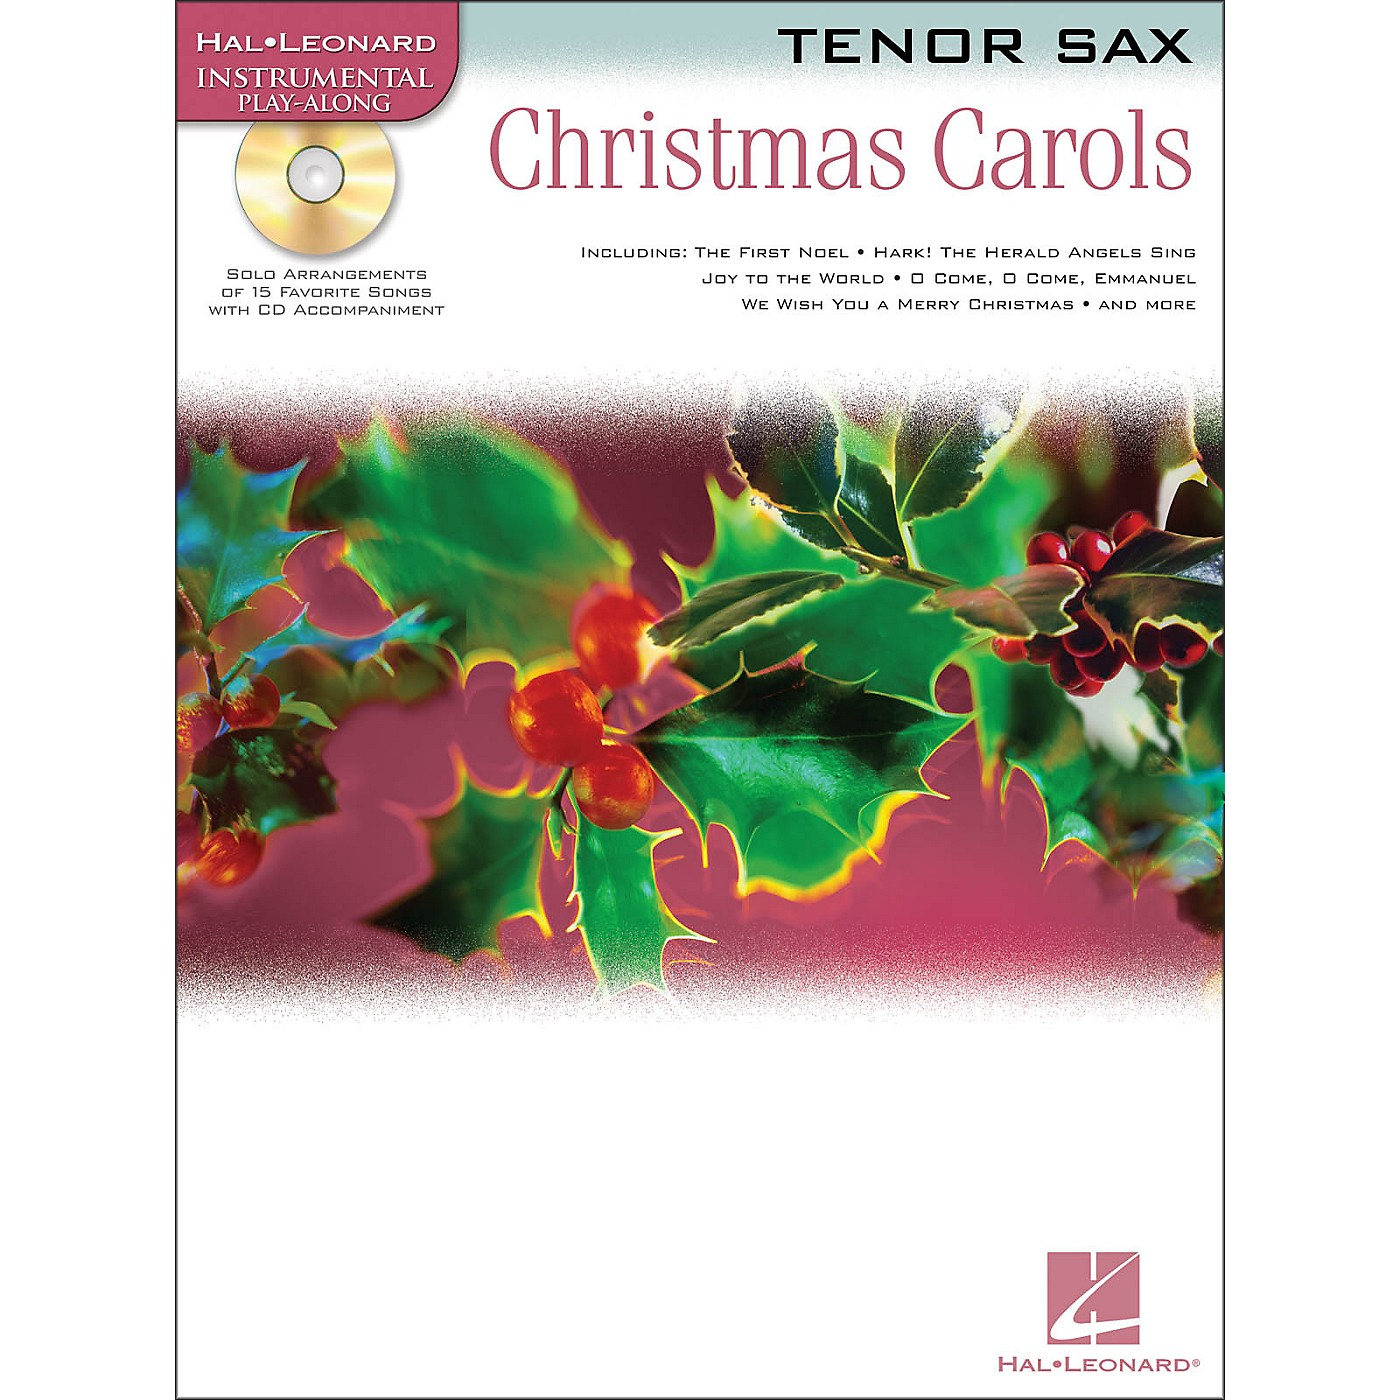 Hal Leonard Christmas Carols for Tenor Sax Book/CD thumbnail